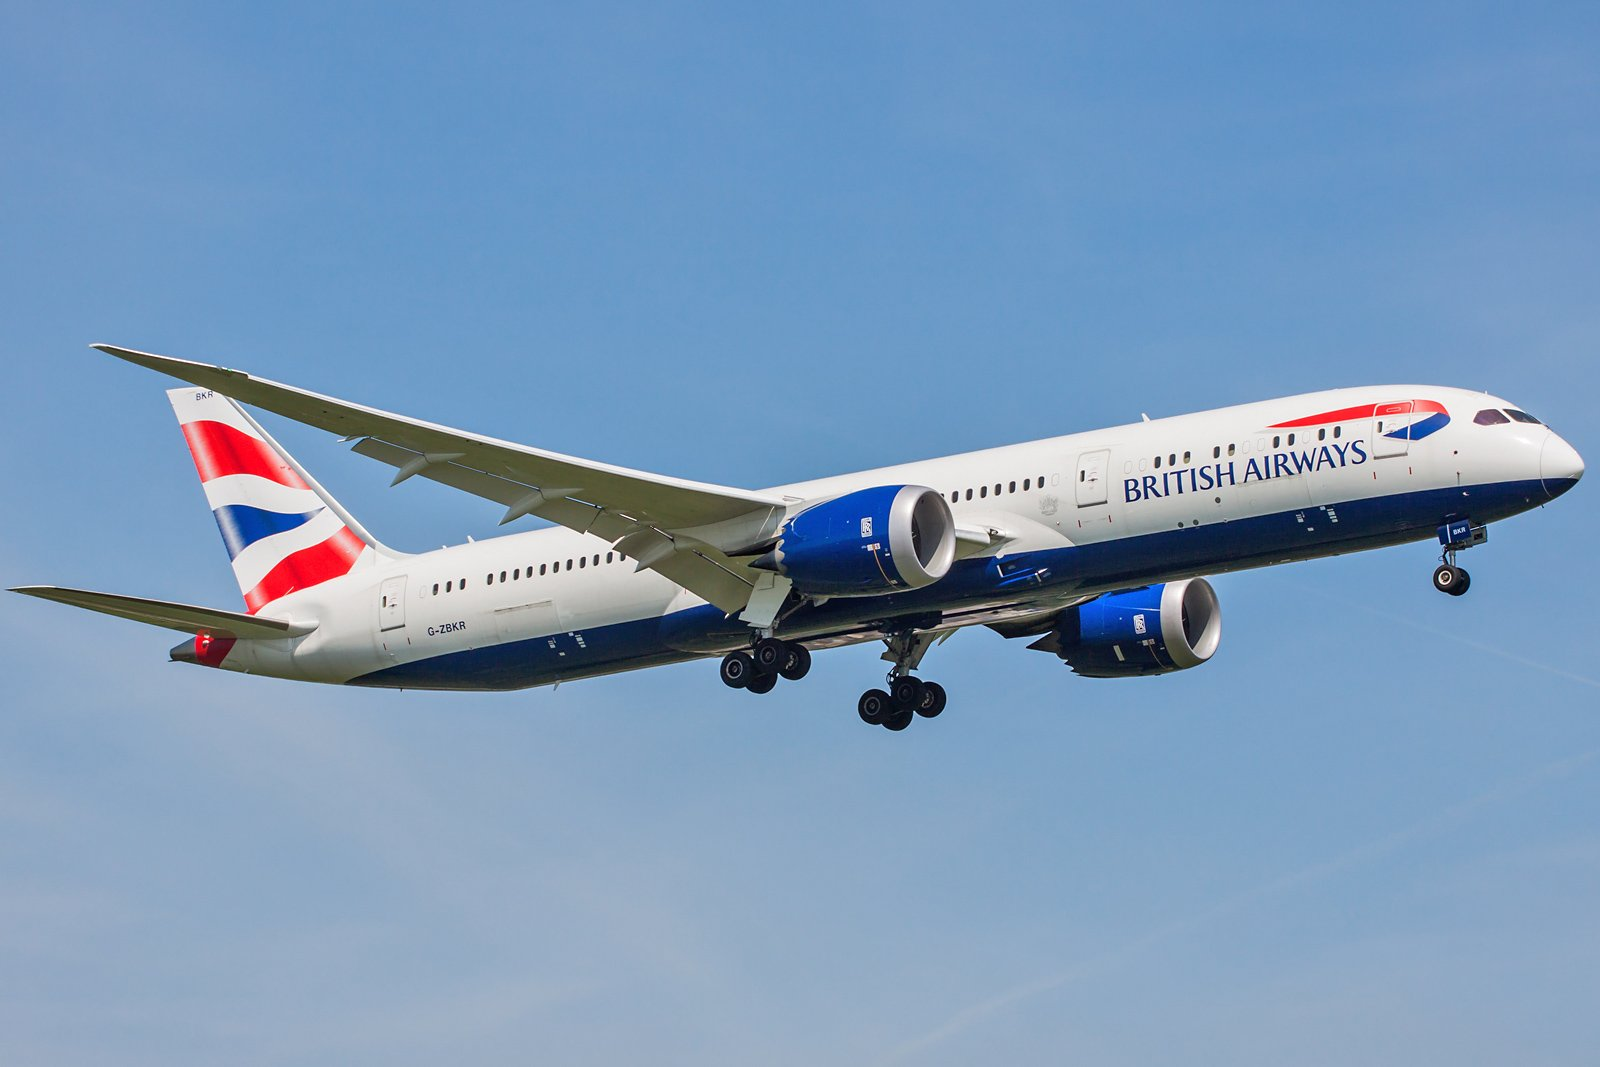 British Airways Boeing 787-9 Dreamliner G-ZBKR